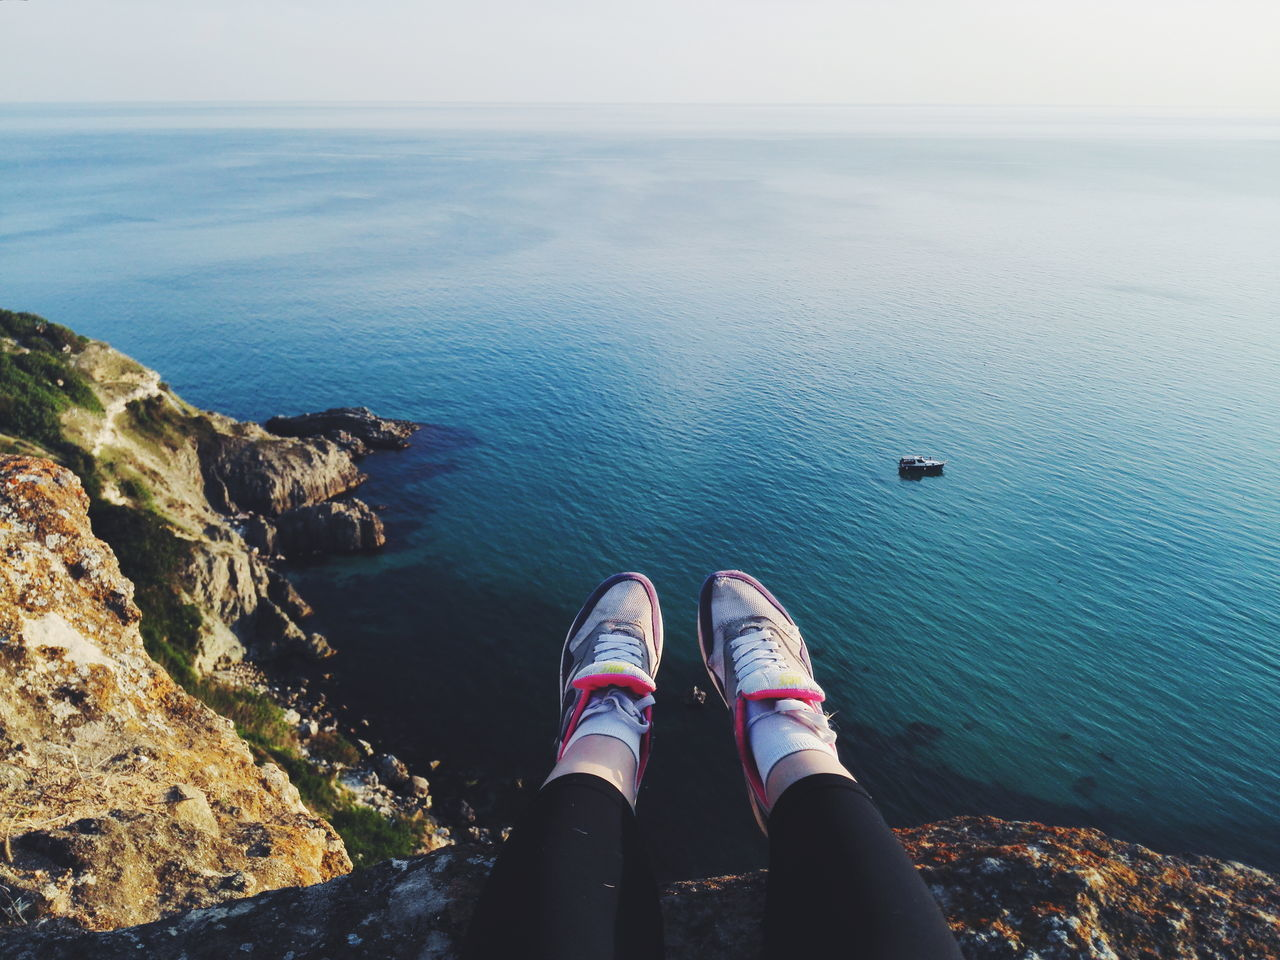 Human Leg Sea Water Human Body Part Shoe Foot One Person Tourism Outdoors Adult Leg Horizon Over Water Beauty In Nature Nature Huawei Honor6 Huawei Honor 6 Russia Sevastopol  Sevastopol' Севастополь Cremea Nature Beauty In Nature Landscape